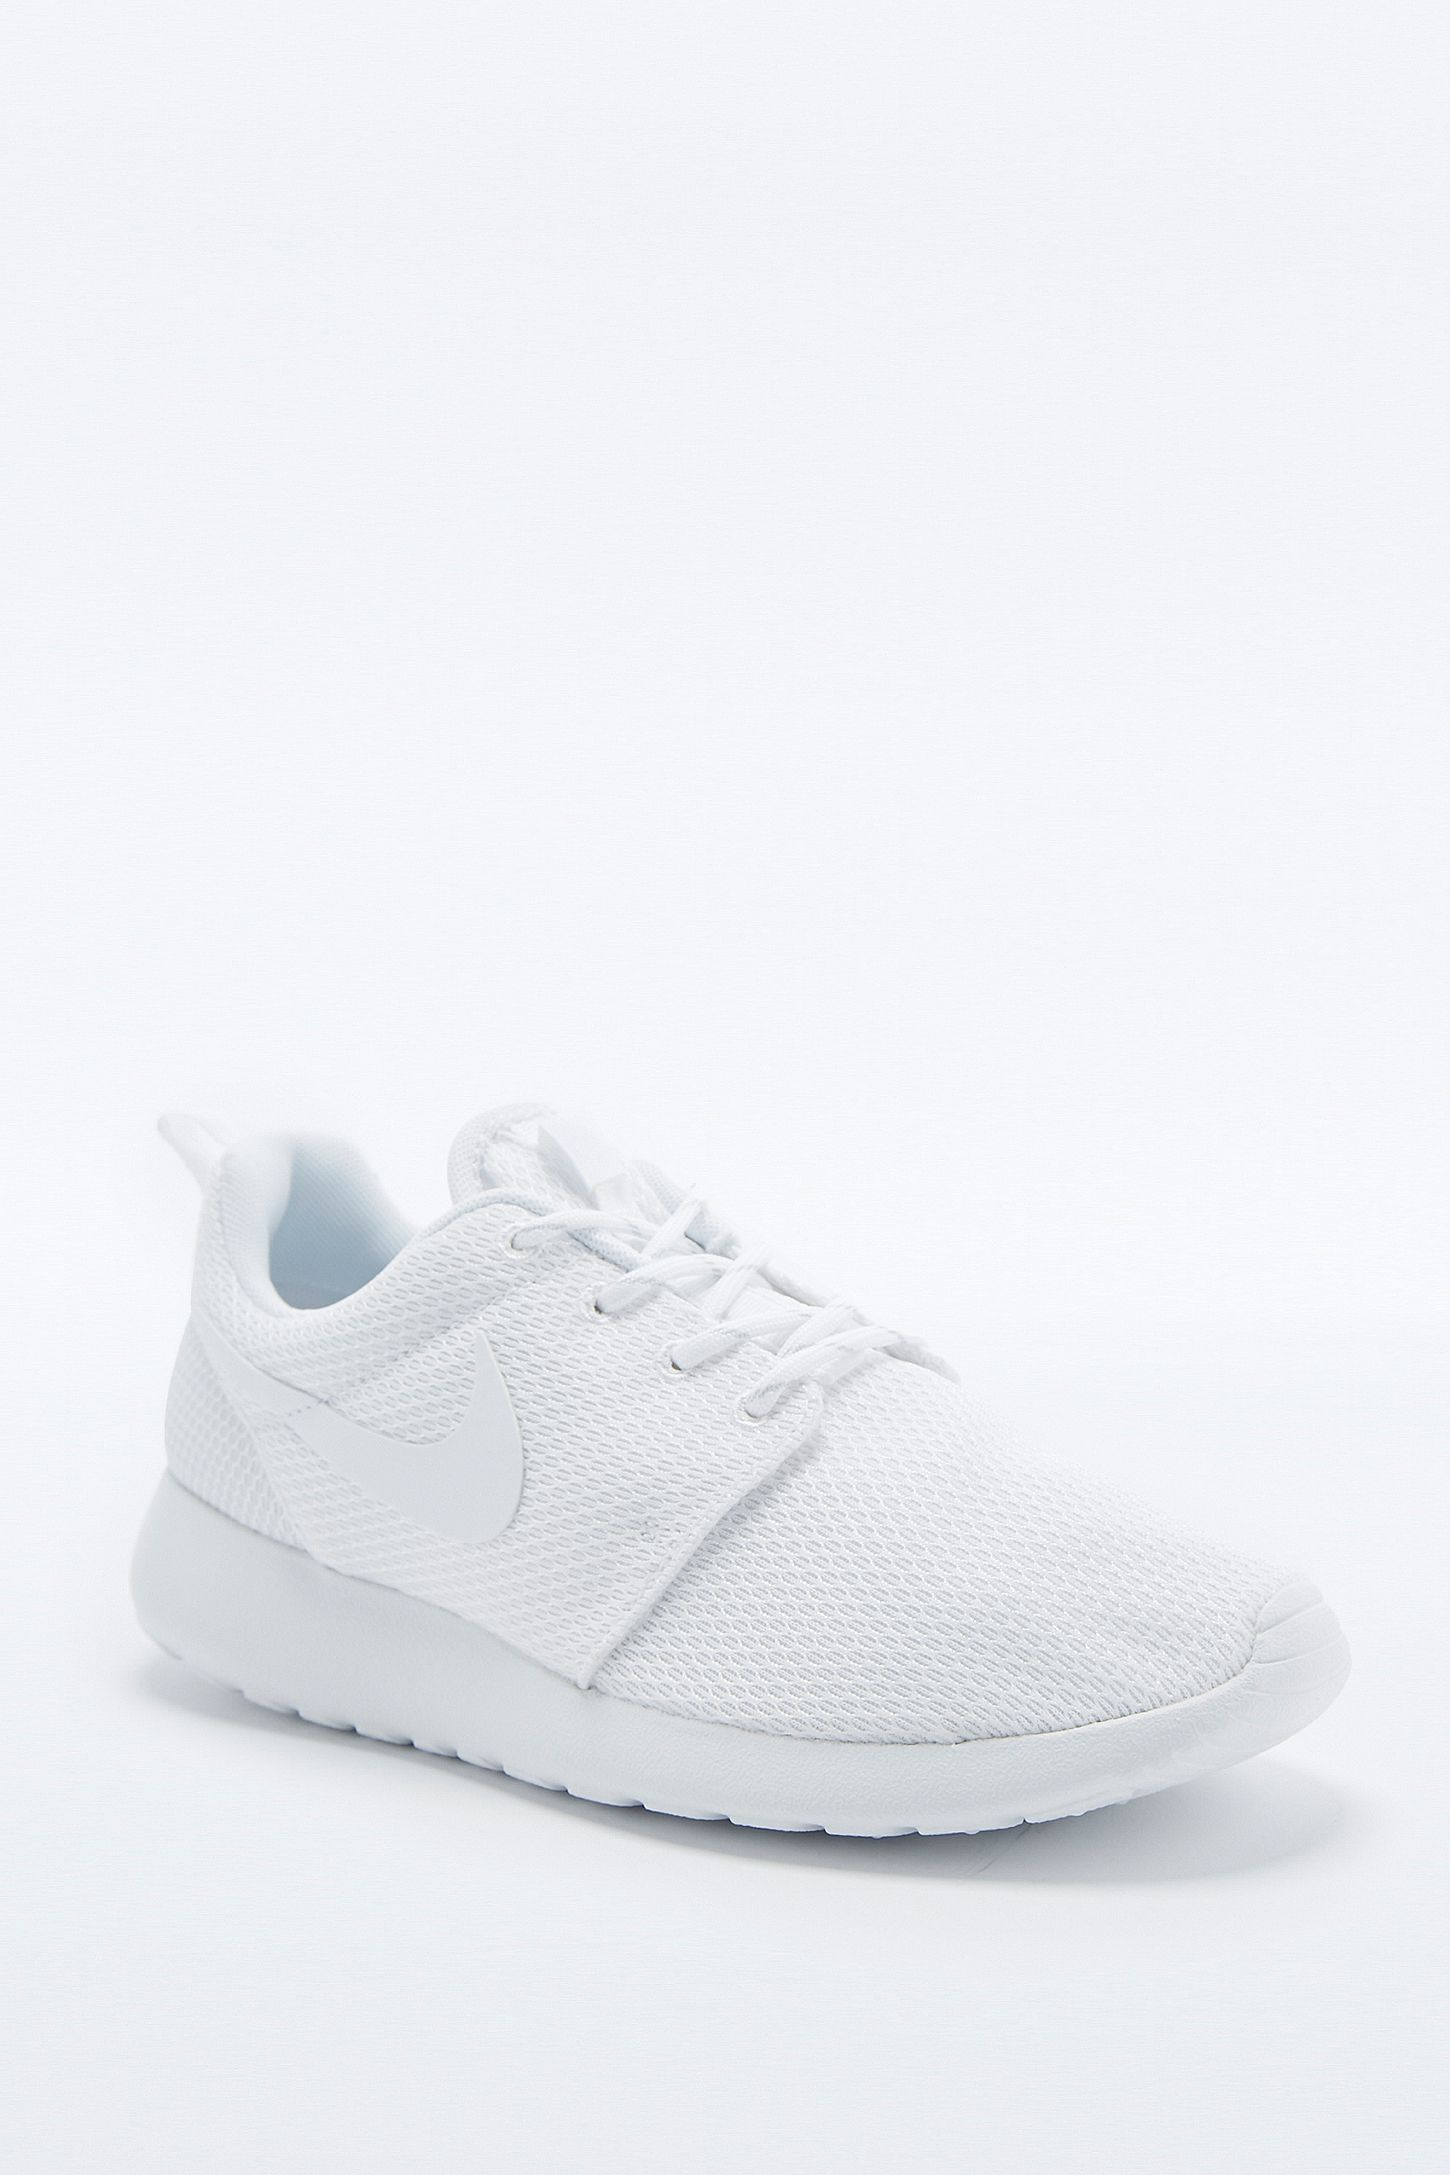 6c63d32cf4b79 Nike Roshe Run White and Silver Trainers. Click on image to zoom. Hover to  zoom. Double Tap to Zoom